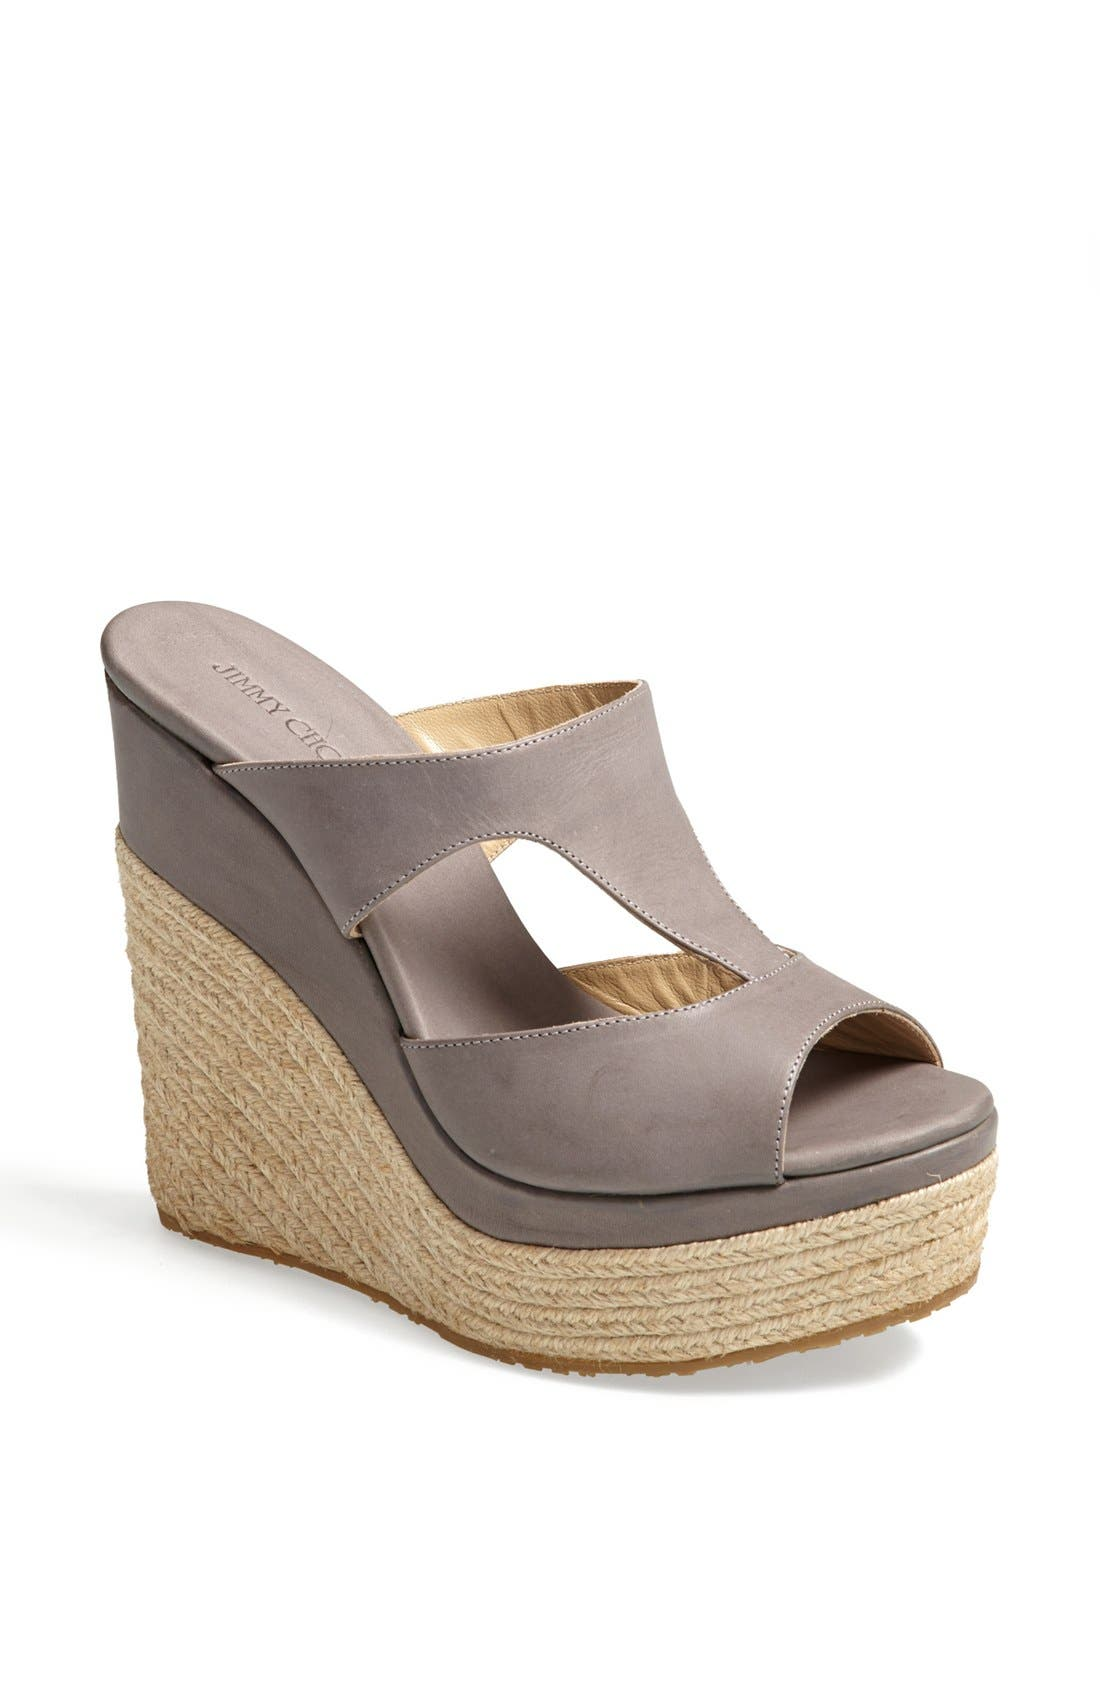 Main Image - Jimmy Choo 'Pledge' Espadrille Sandal